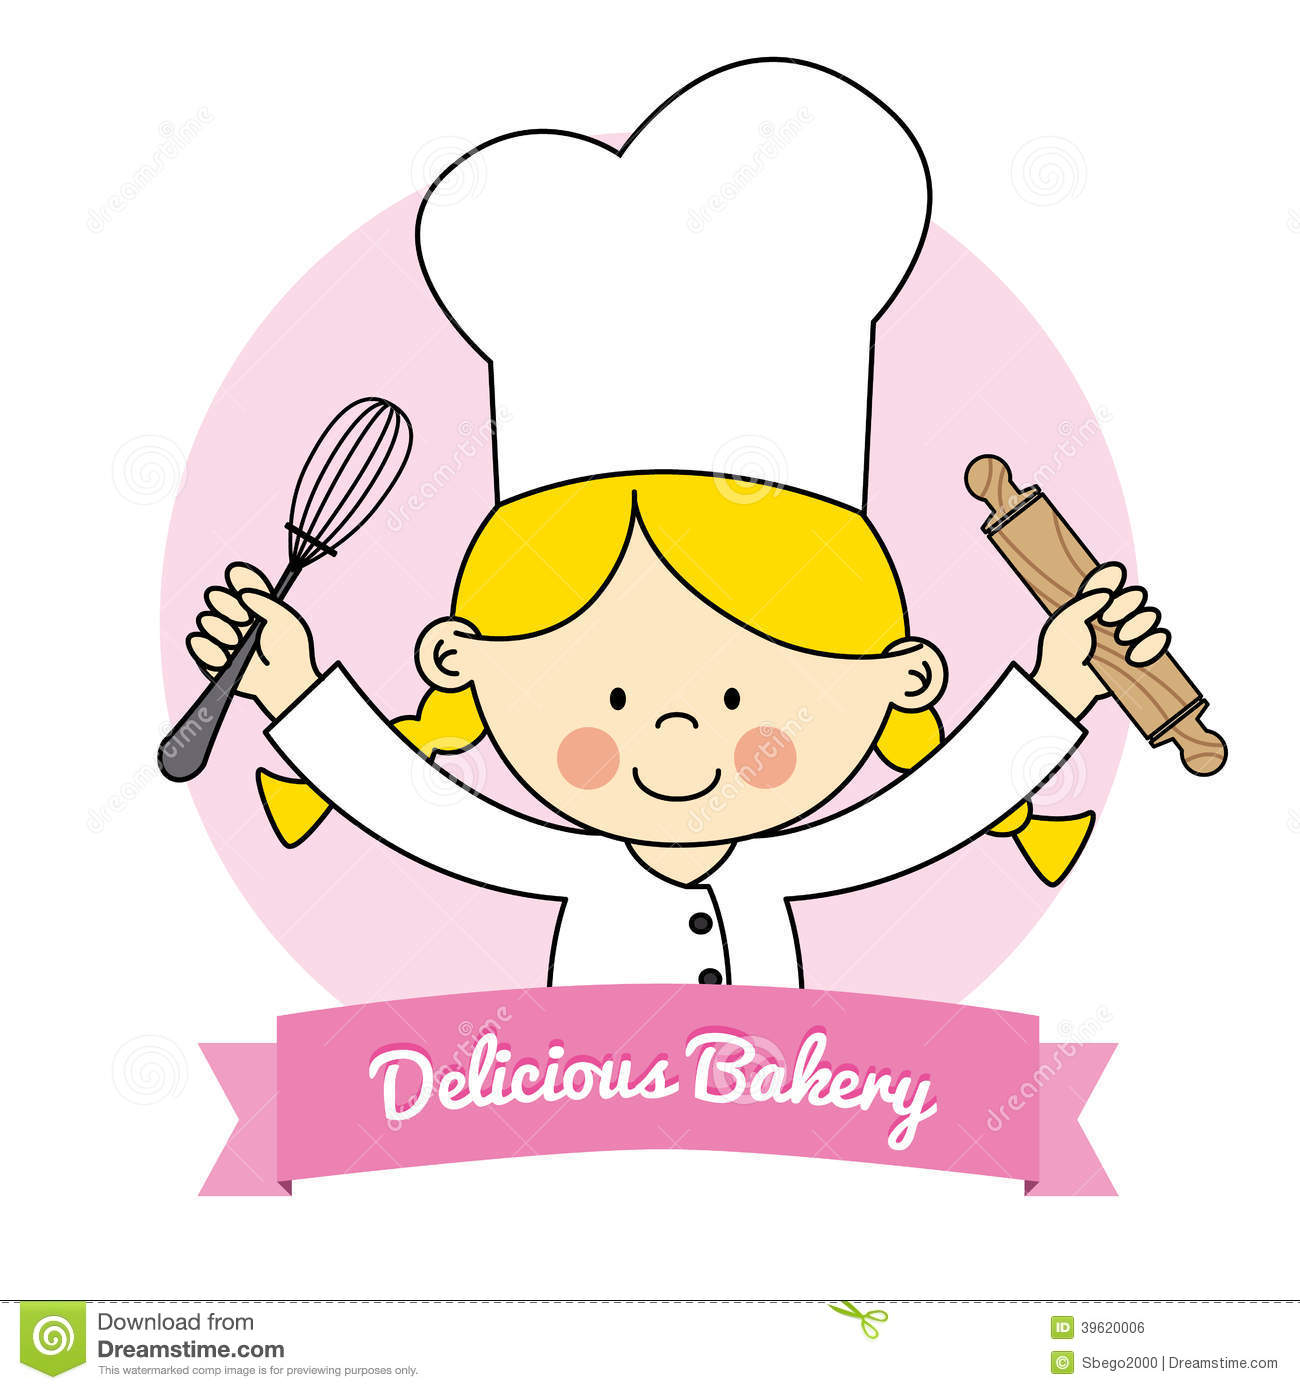 Kitchen chef clipart girl graphic royalty free Little Girl Chef Clipart - Clipart Kid graphic royalty free